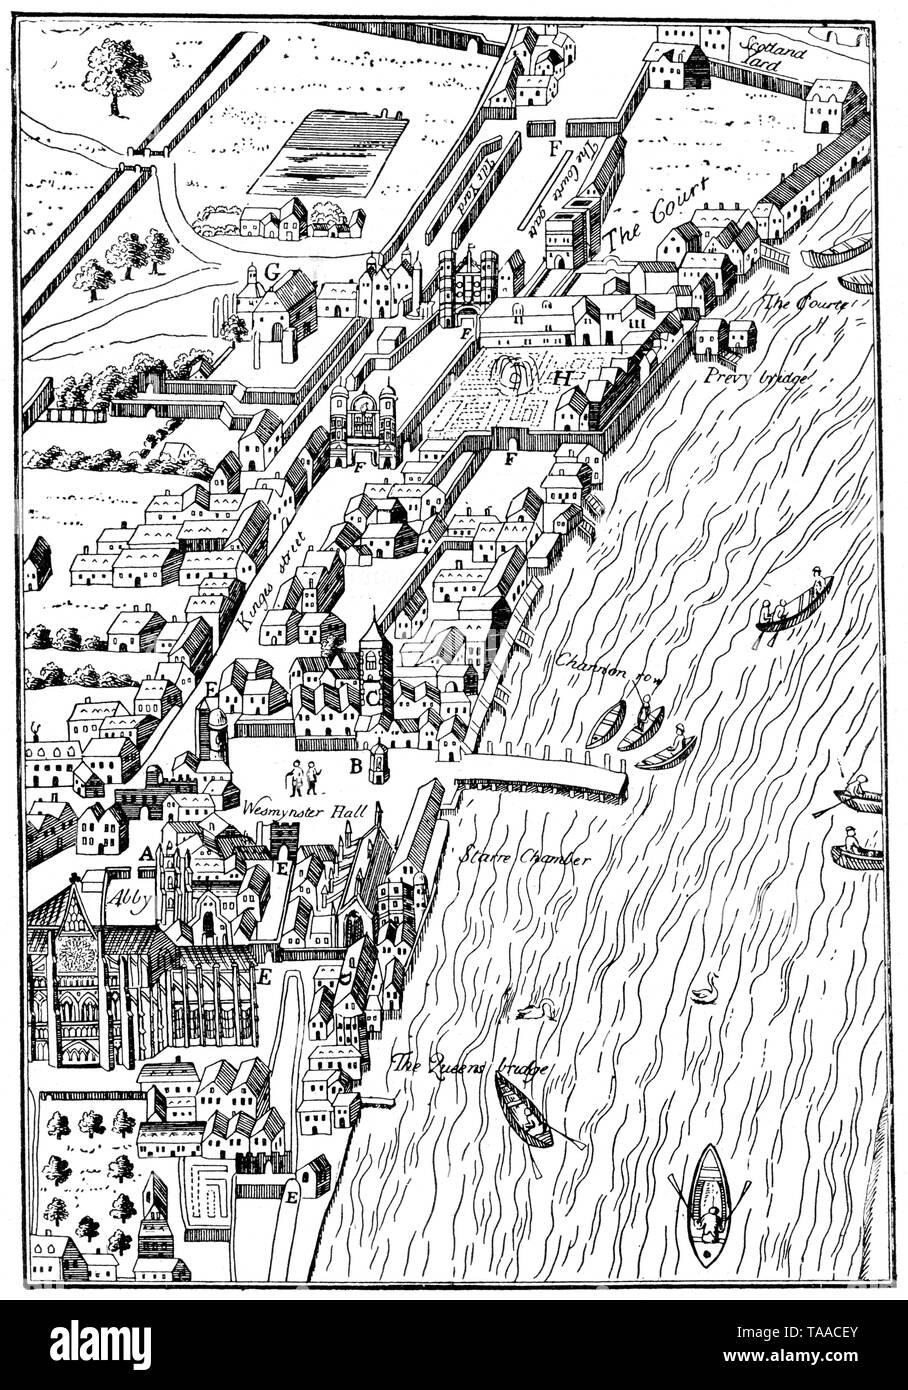 Plan of part of the City of Westminster, taken from Agas' Map of London, Civitas Londinium, 1578. Possibly by Ralph Agas (c1540-1621). This view of the Thames also features Westminster Abbey and the original Palace of Westminster. - Stock Image